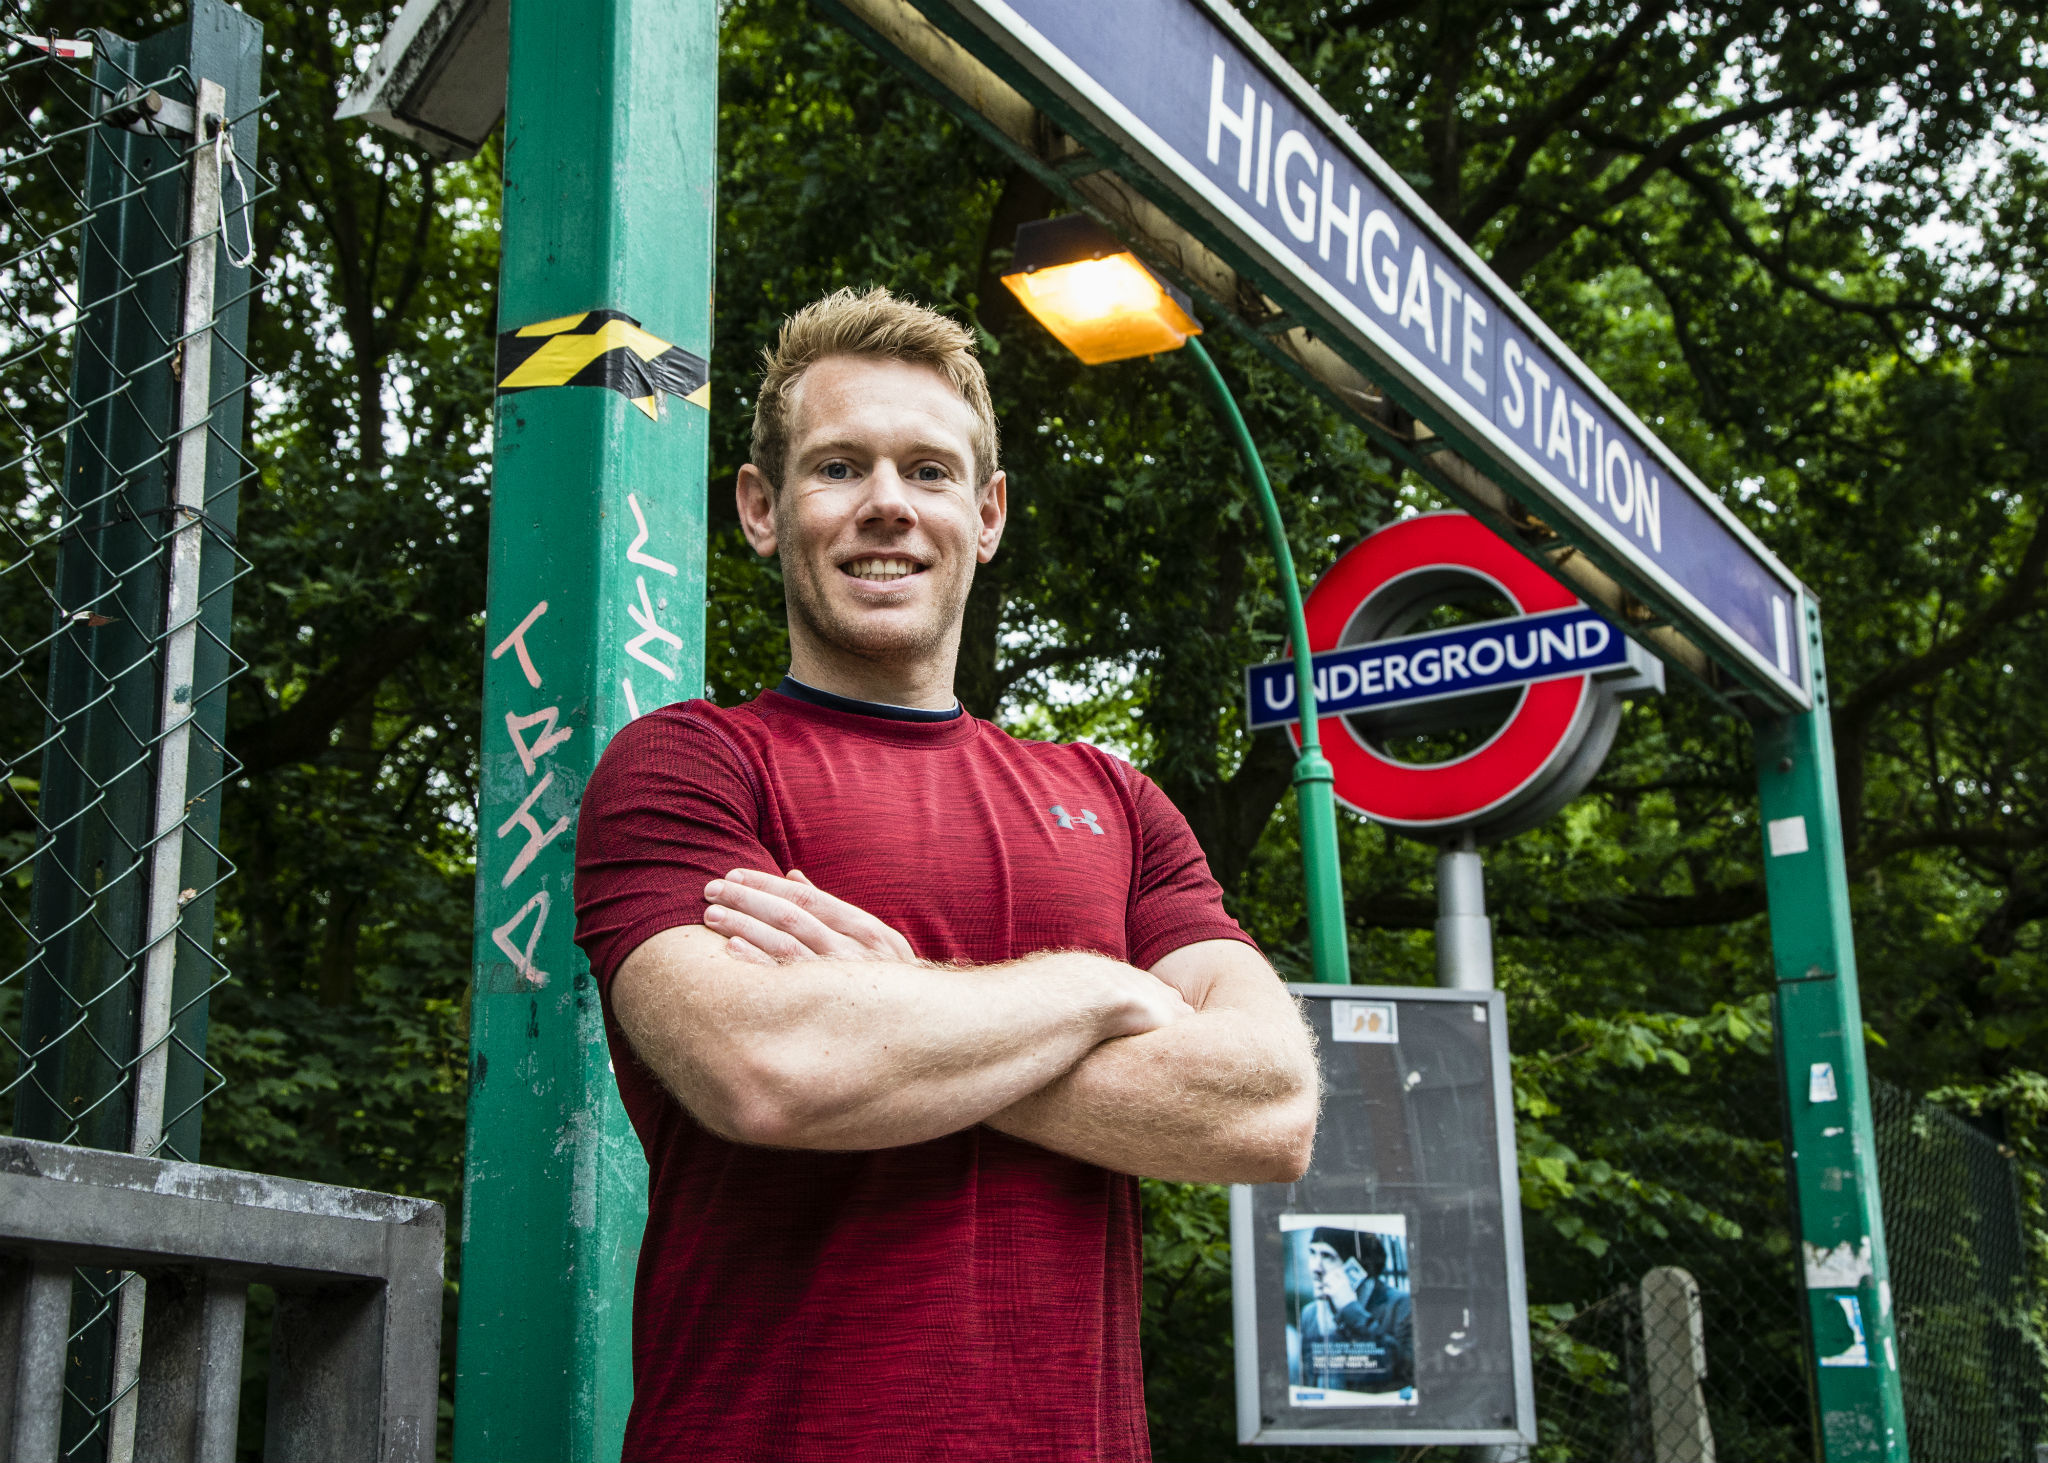 This Londoner ran the entire length of the tube network